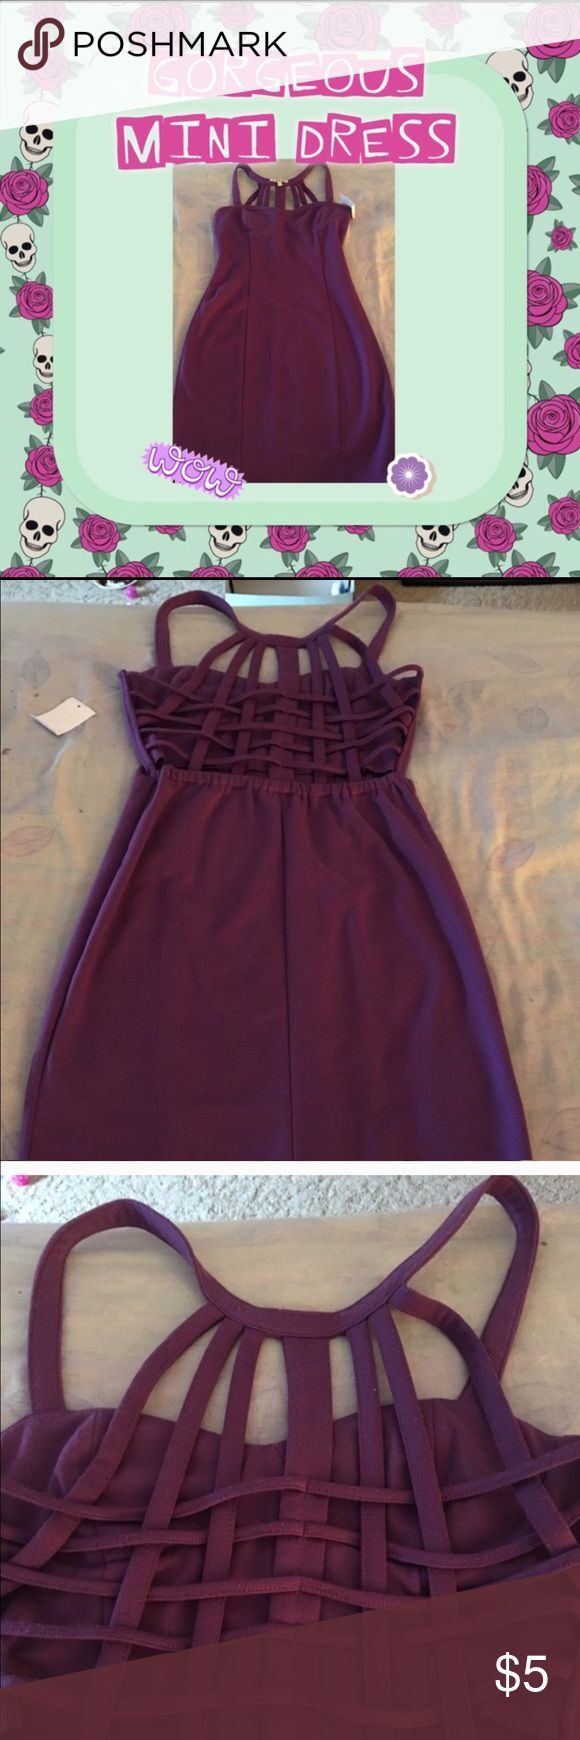 Purple mini dress with caged style back NWT sexy deep purple colored mini dress with sweetheart neckline. Stretchy material 95% polyester 5% spandex back is open caged crisis cross style which makes it very sexy and it's also electric around the bottom back. Brand new never worn. Charlotte Russe Dresses Mini